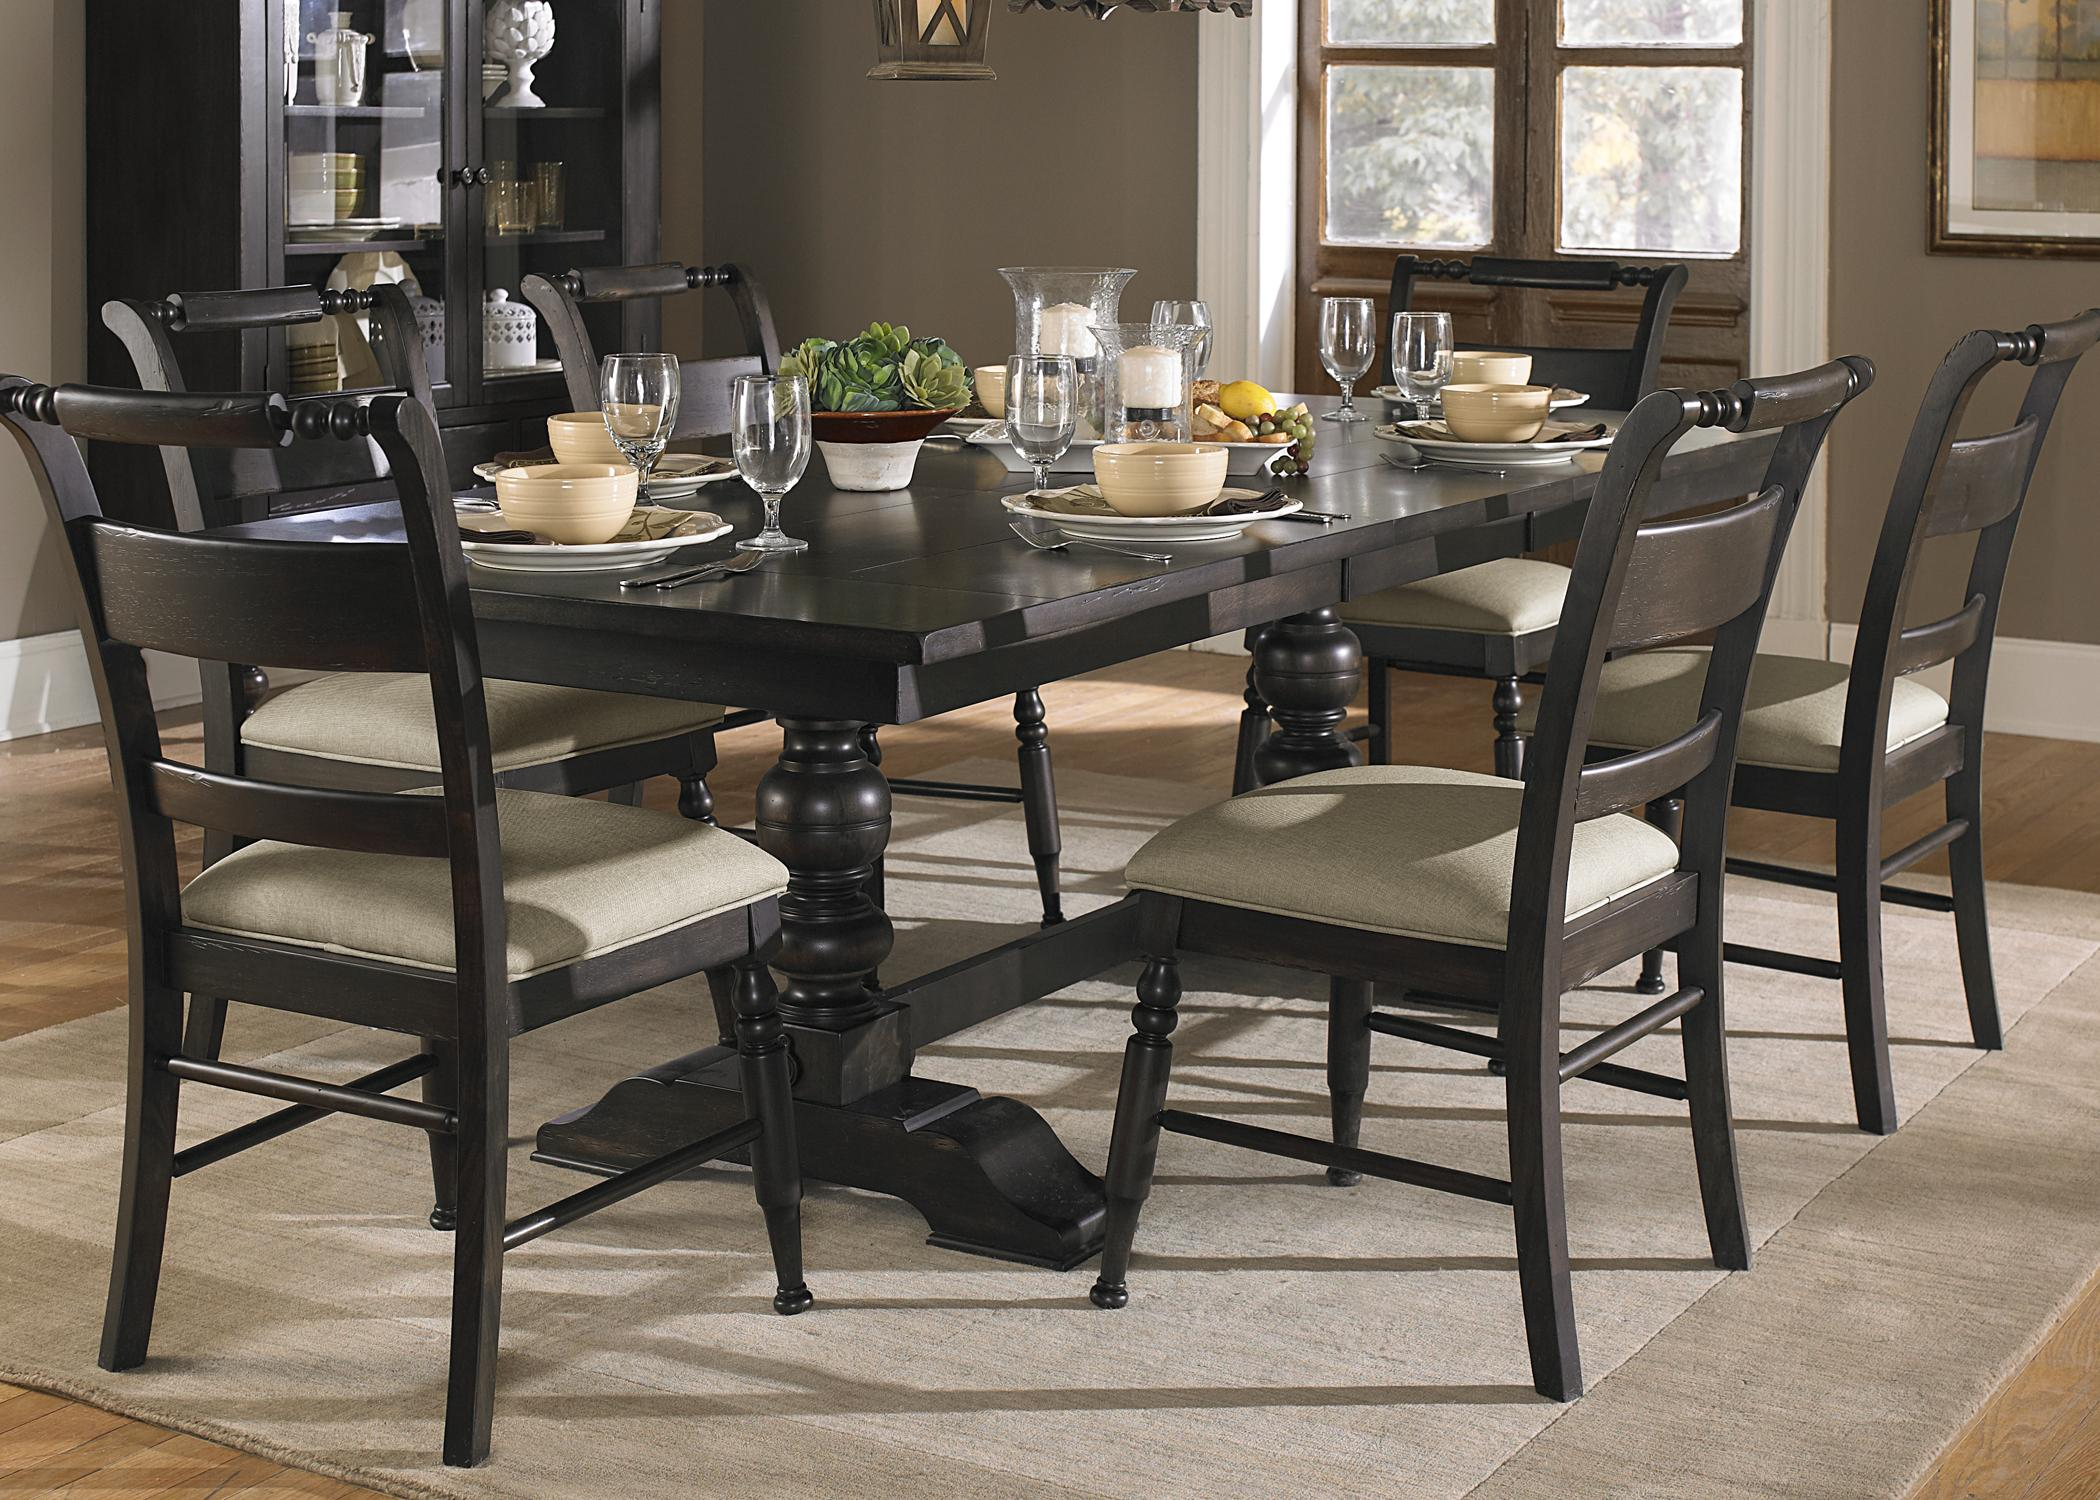 Great 7 Piece Trestle Dining Room Table Set